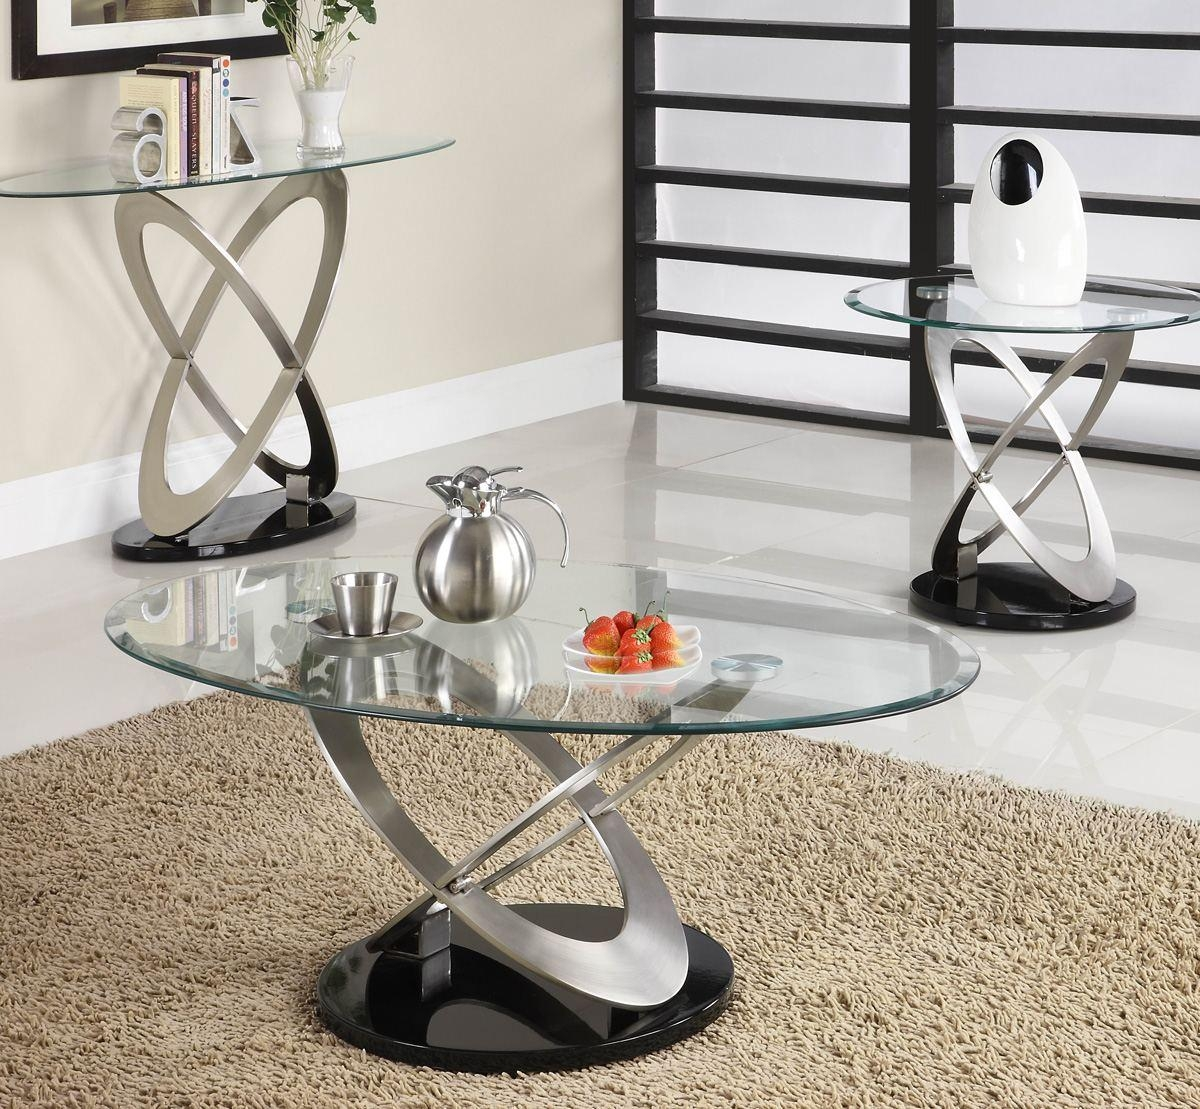 Homelegance Firth Oval Glass Sofa Table In Chrome & Black Metal With Regard To Sofa Table Chairs (Image 9 of 20)